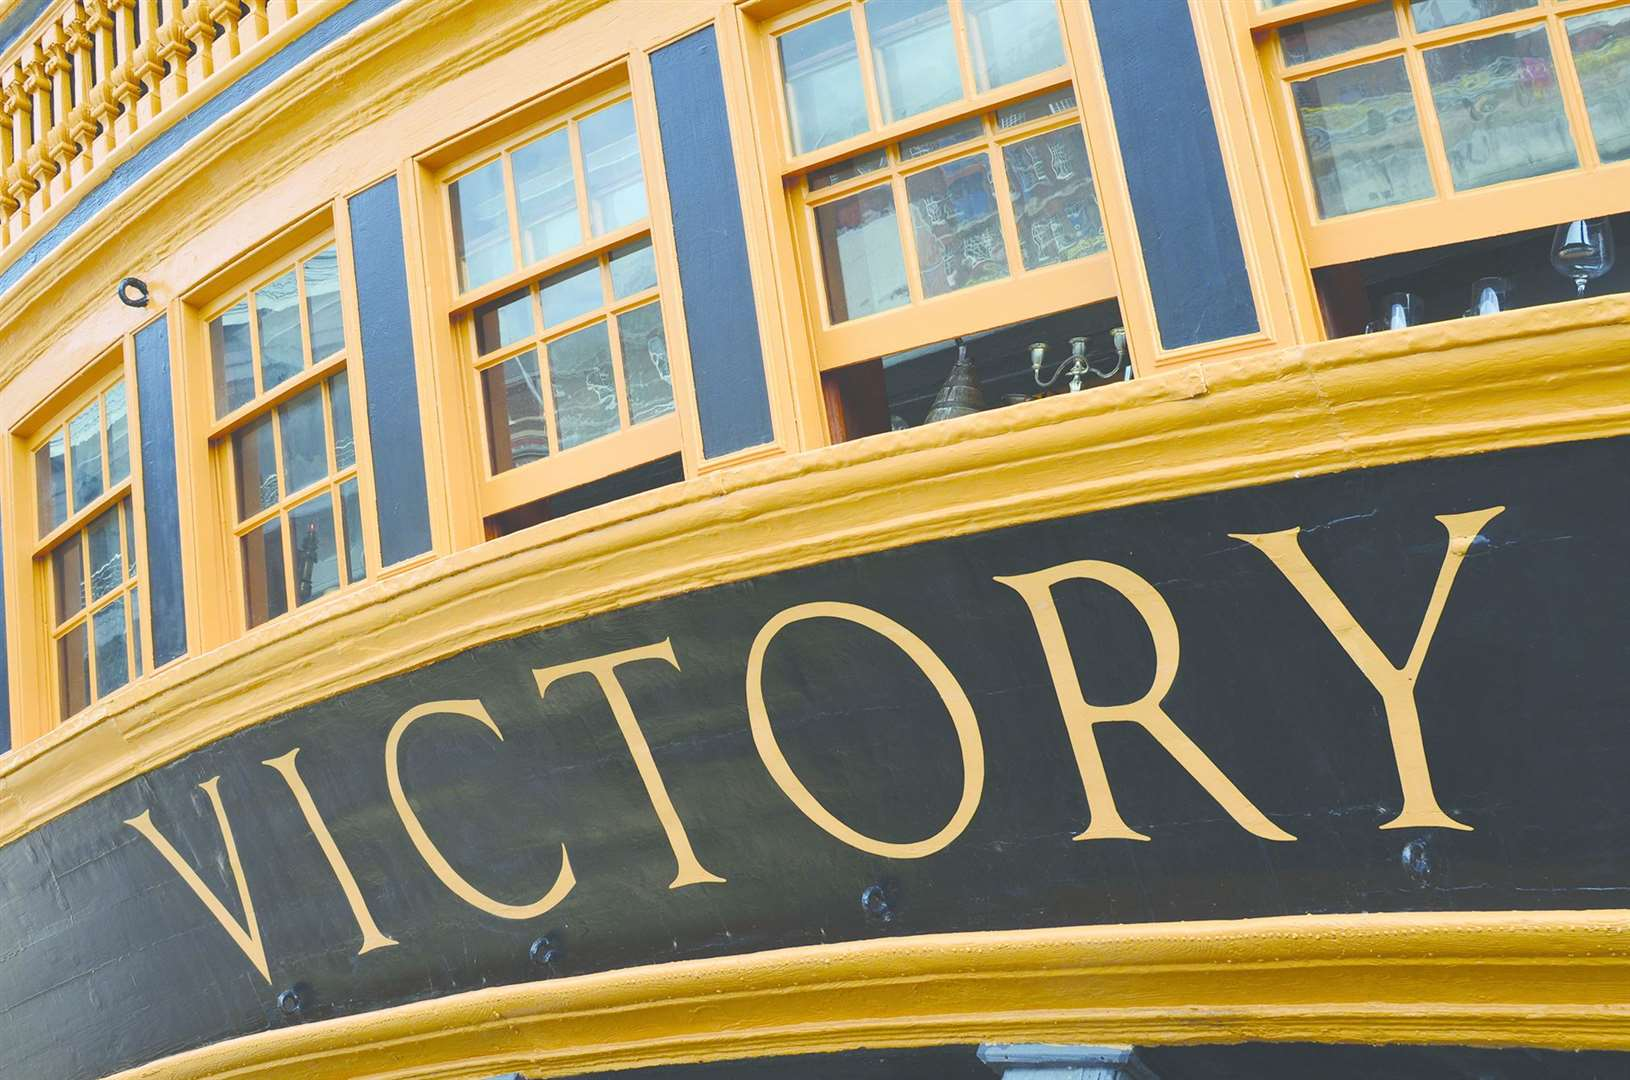 Nelson's flagship HMS Victory was built in Chatham